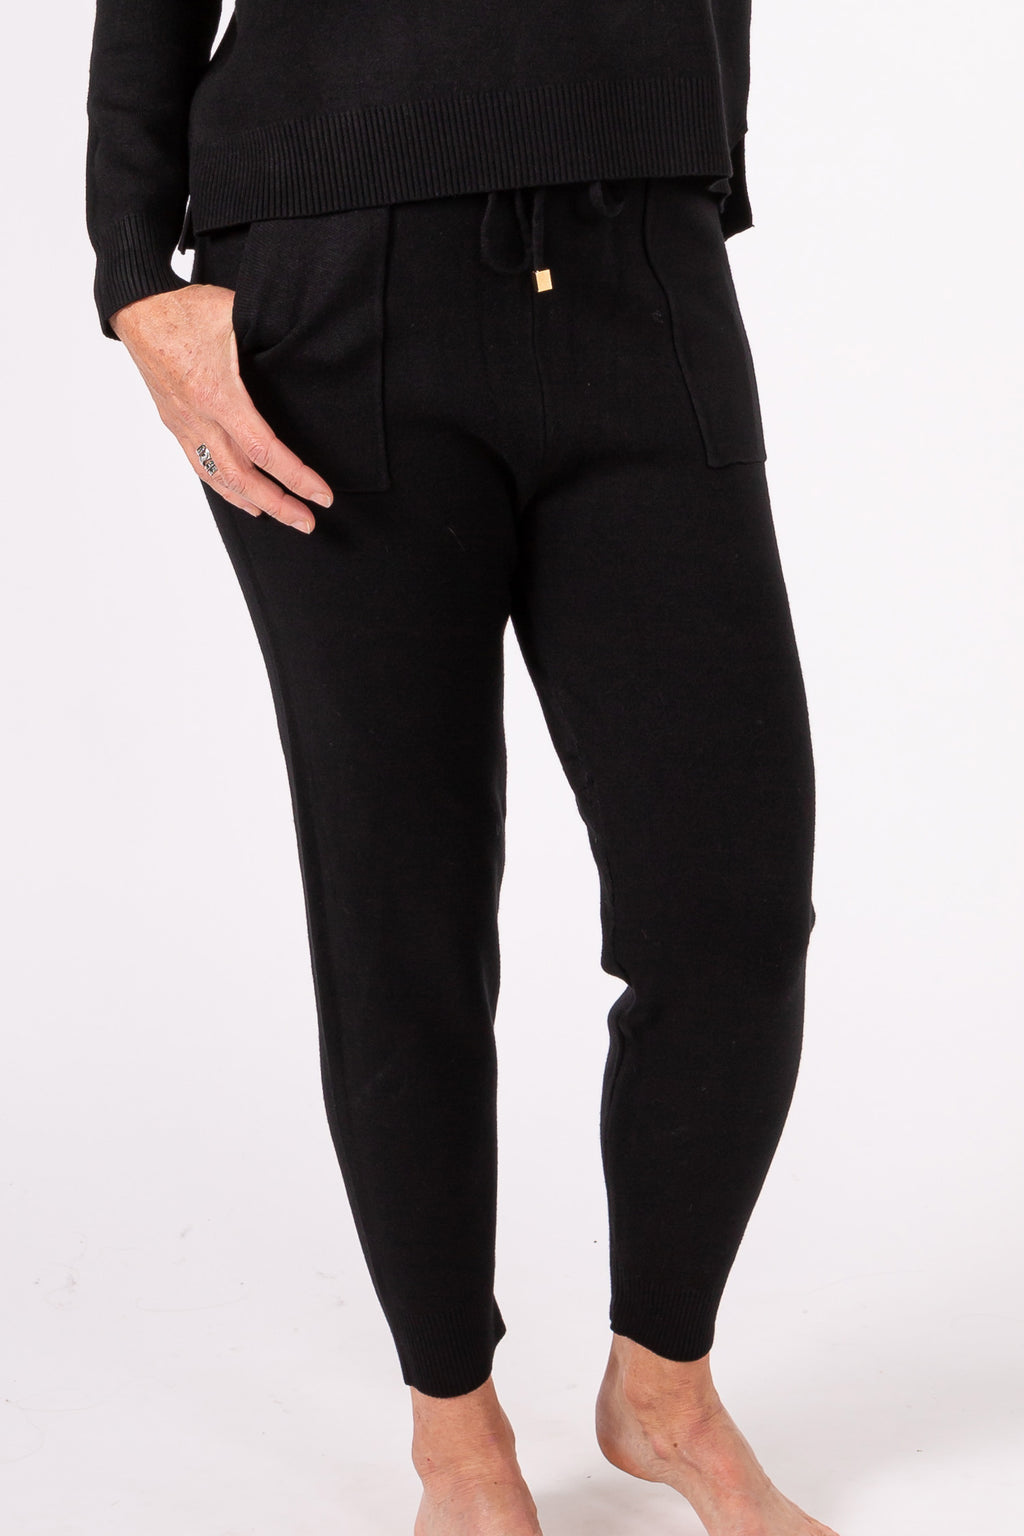 Sweat pant jogging with front pockets